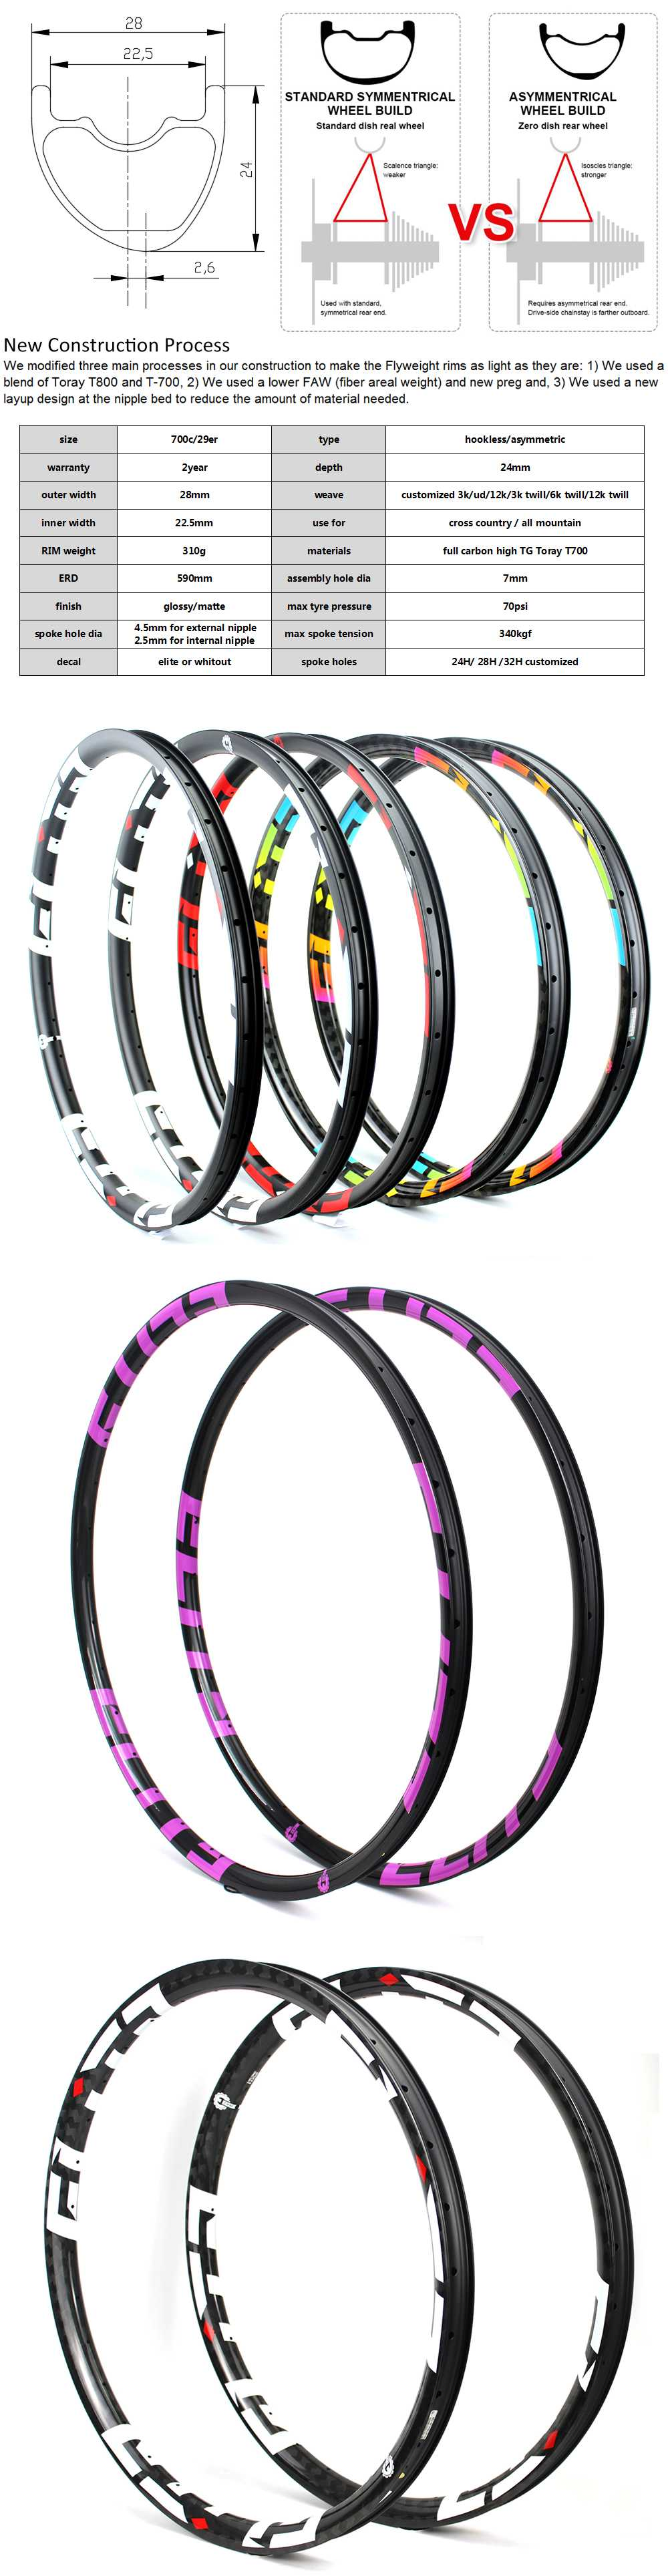 Carbon Rim 310g Super Light 29er MTB 28H 32H Mountain Bike Wheelset For XC//AM